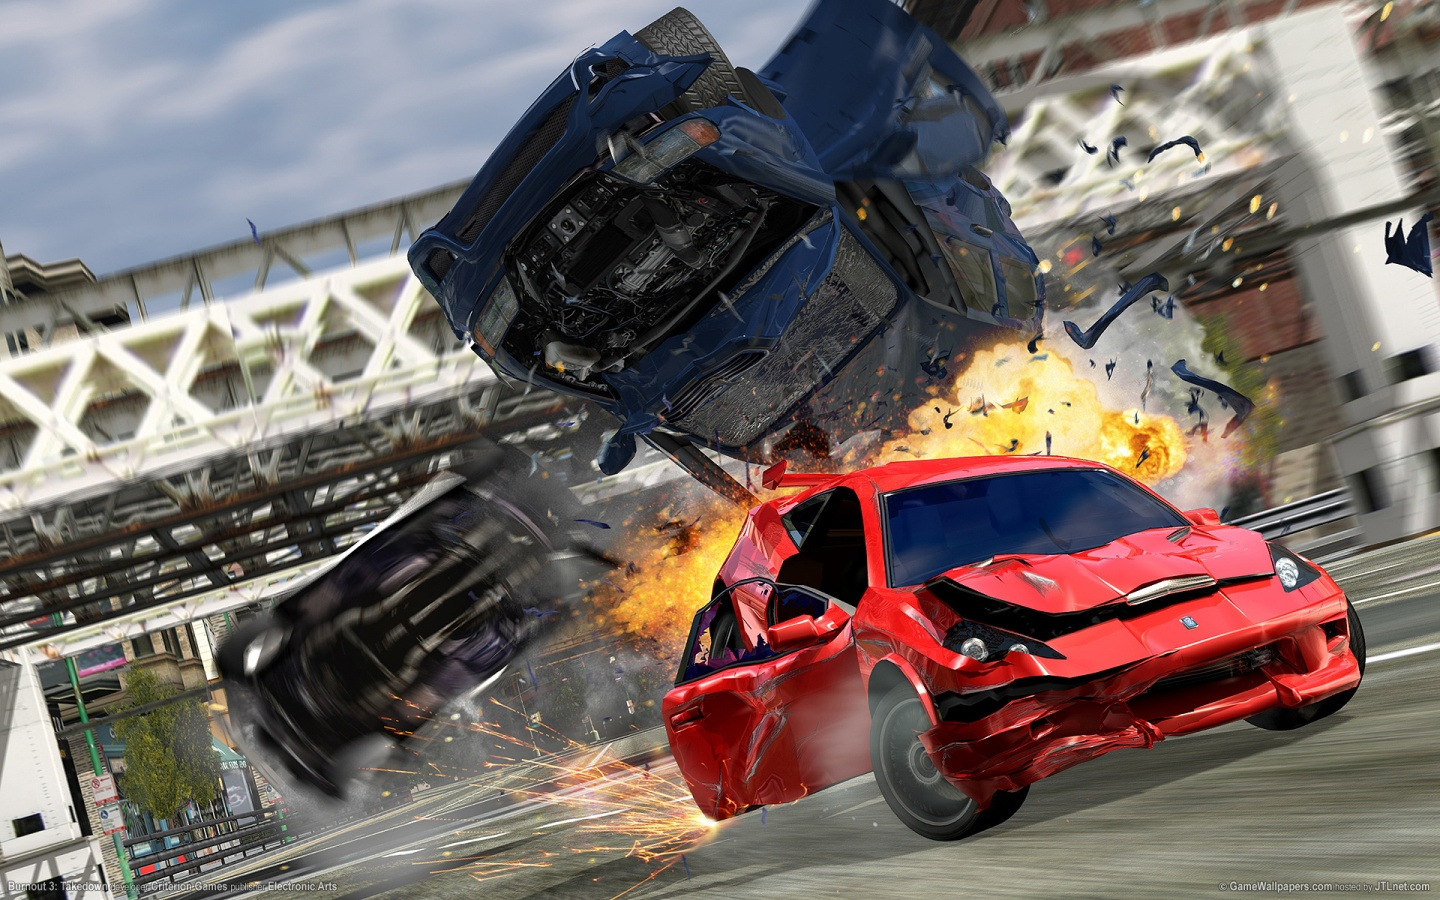 1440x900 Burnout 3: Takedown desktop PC and Mac wallpaper